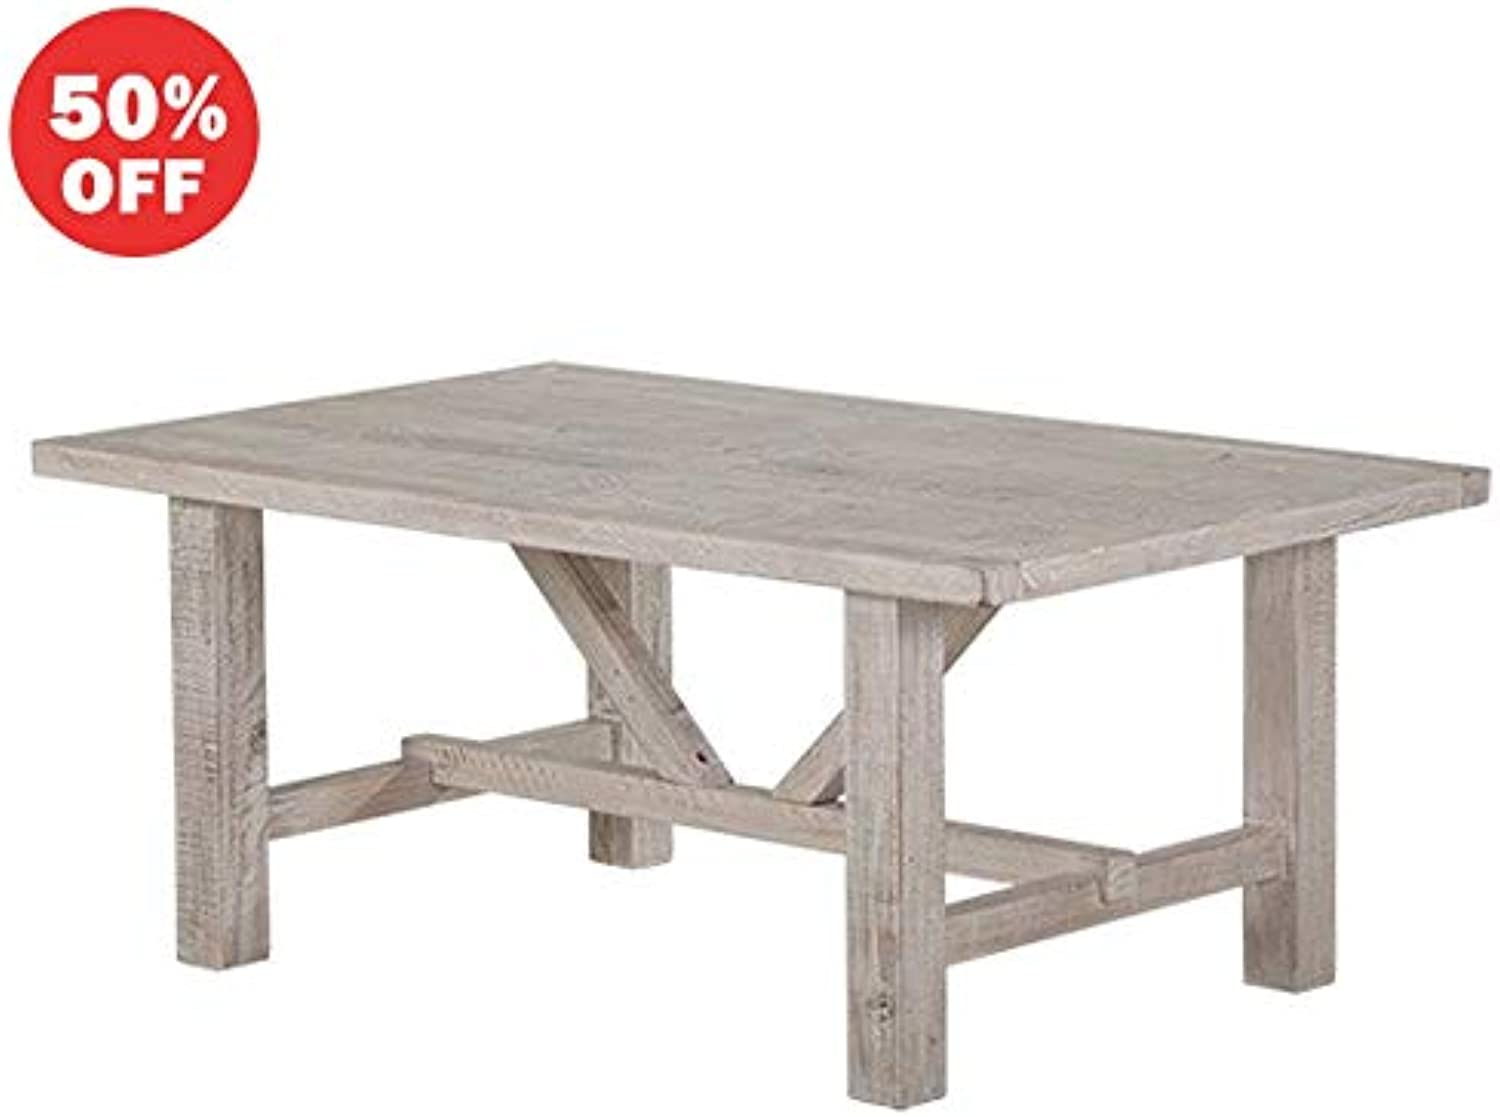 Byron Indoor Timber Coffee Table in White Wash, White Wash - Tables, Bay Gallery Furniture